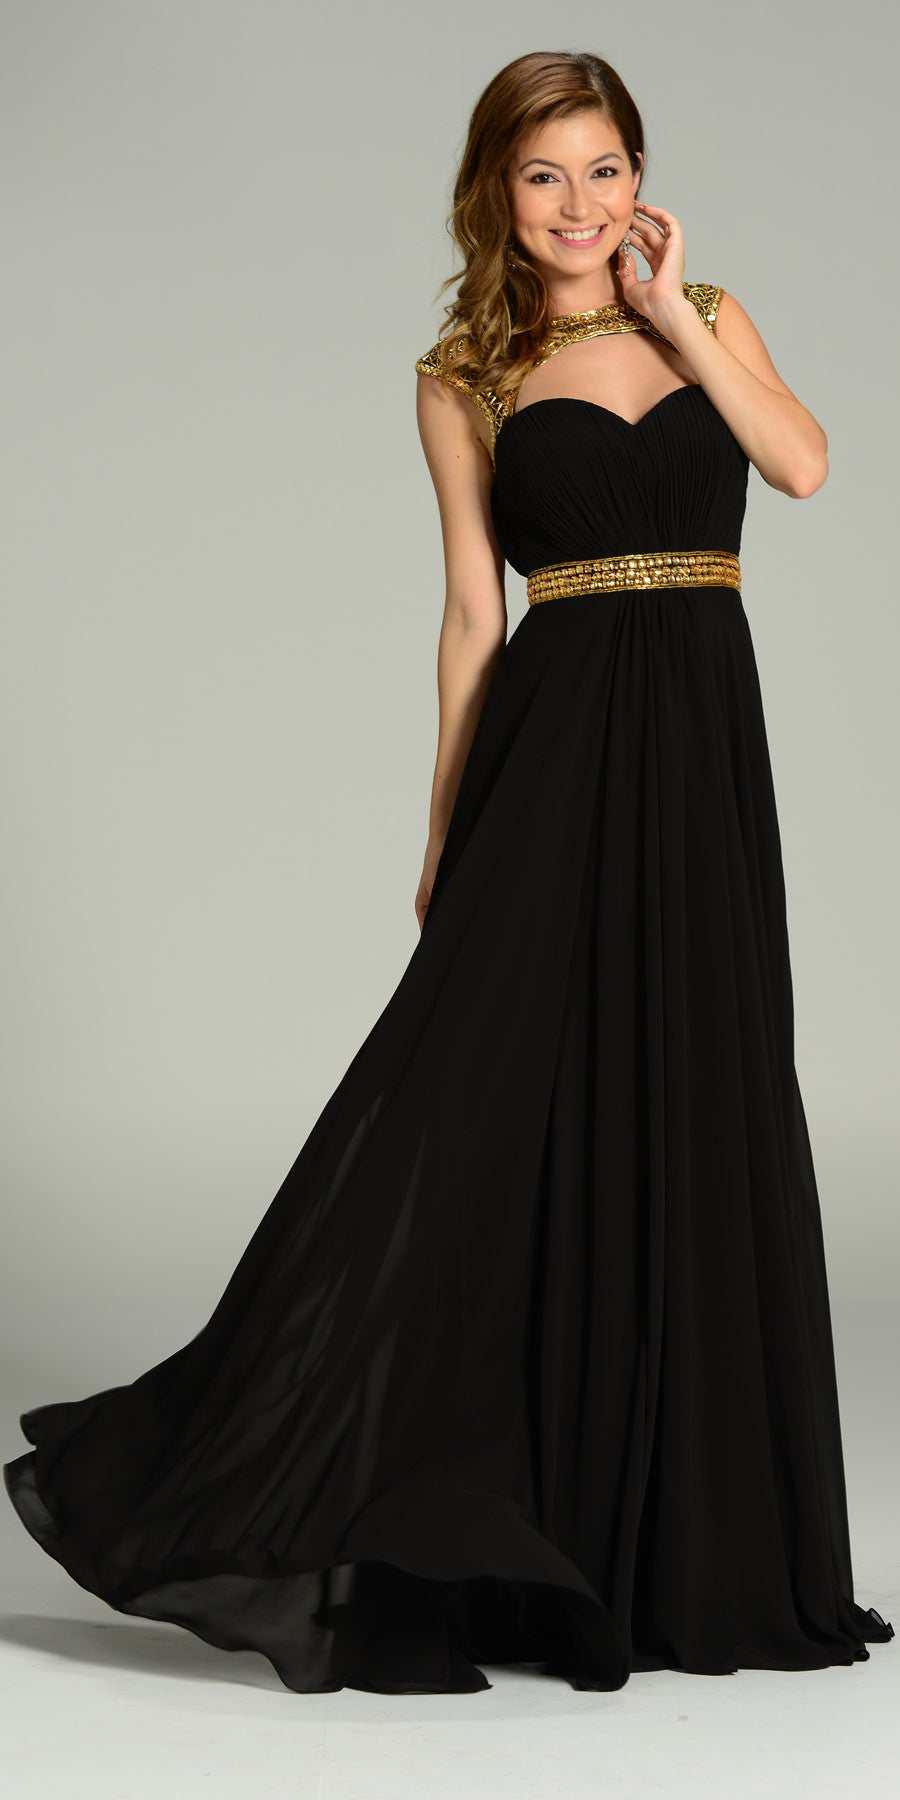 Long Formal Chiffon Floor Length Gown Black Gold Cap Sleeves ...